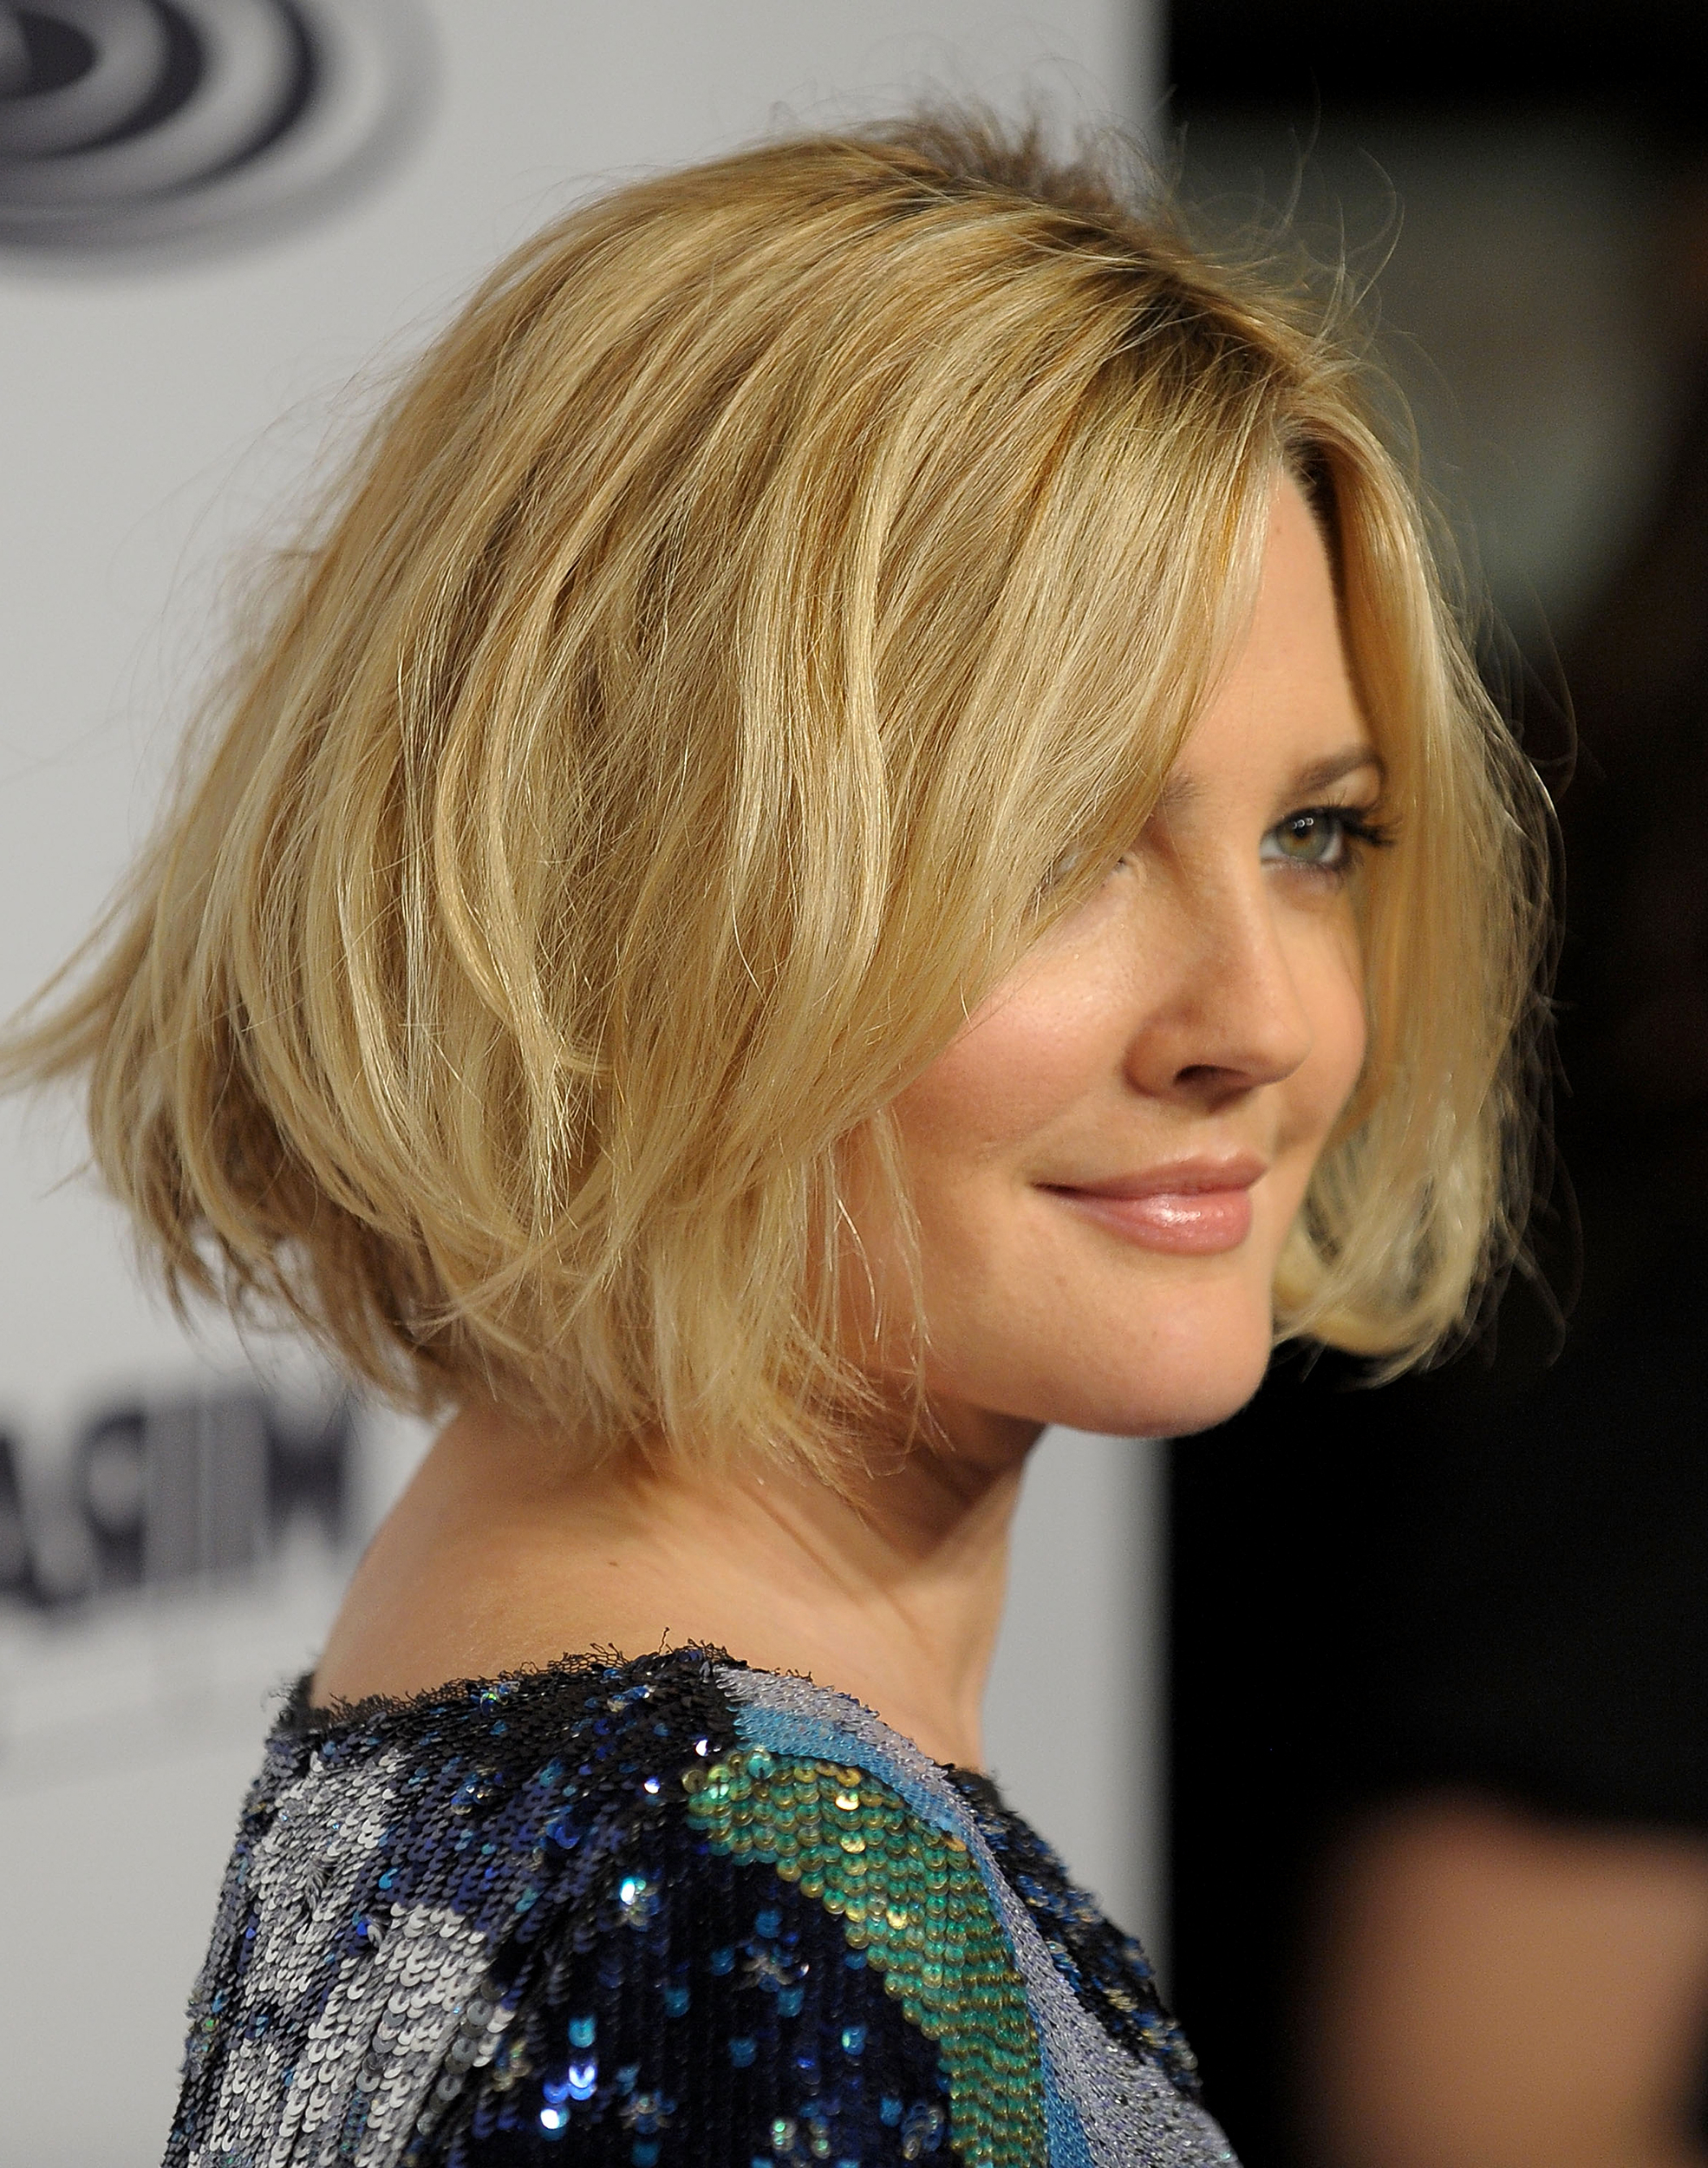 Drew Barrymore's Hair Evolution with Drew Barrymore Short Haircuts